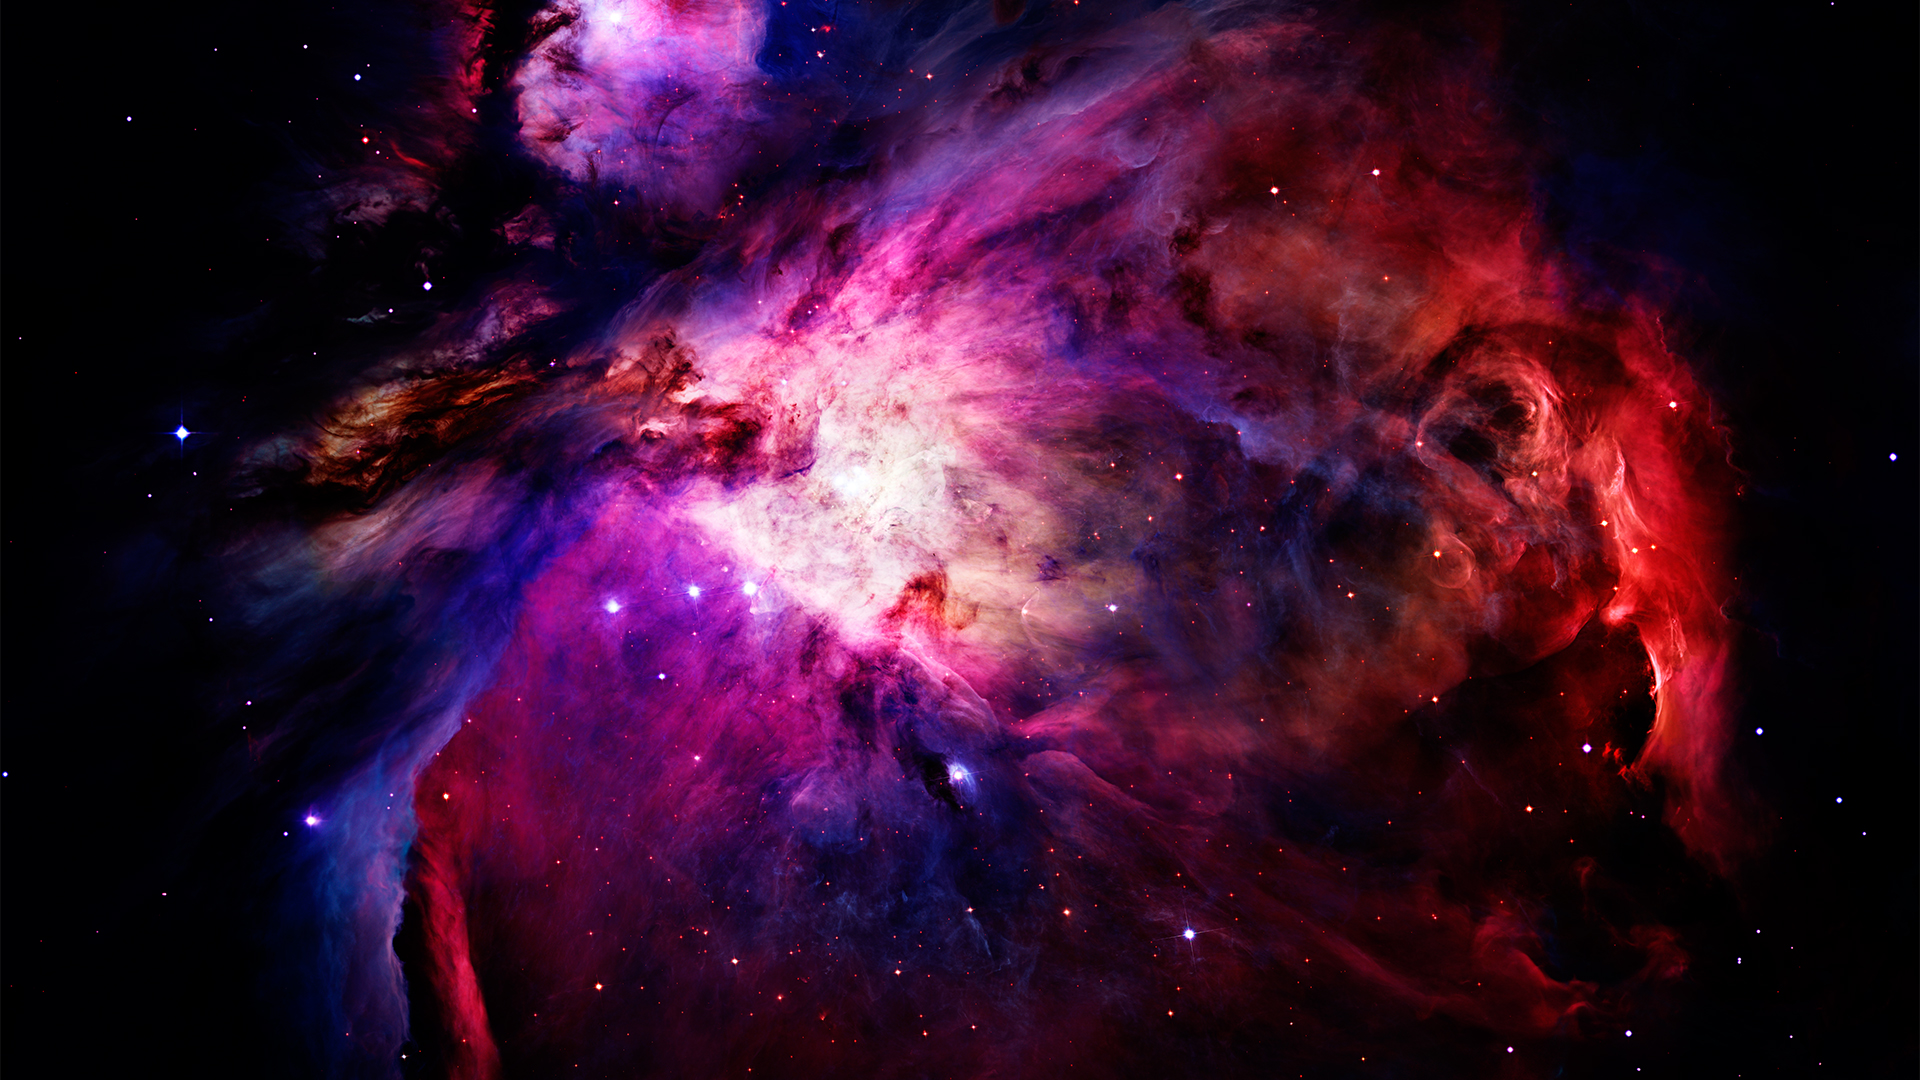 nebula hd wallpaper optical illusions - photo #36